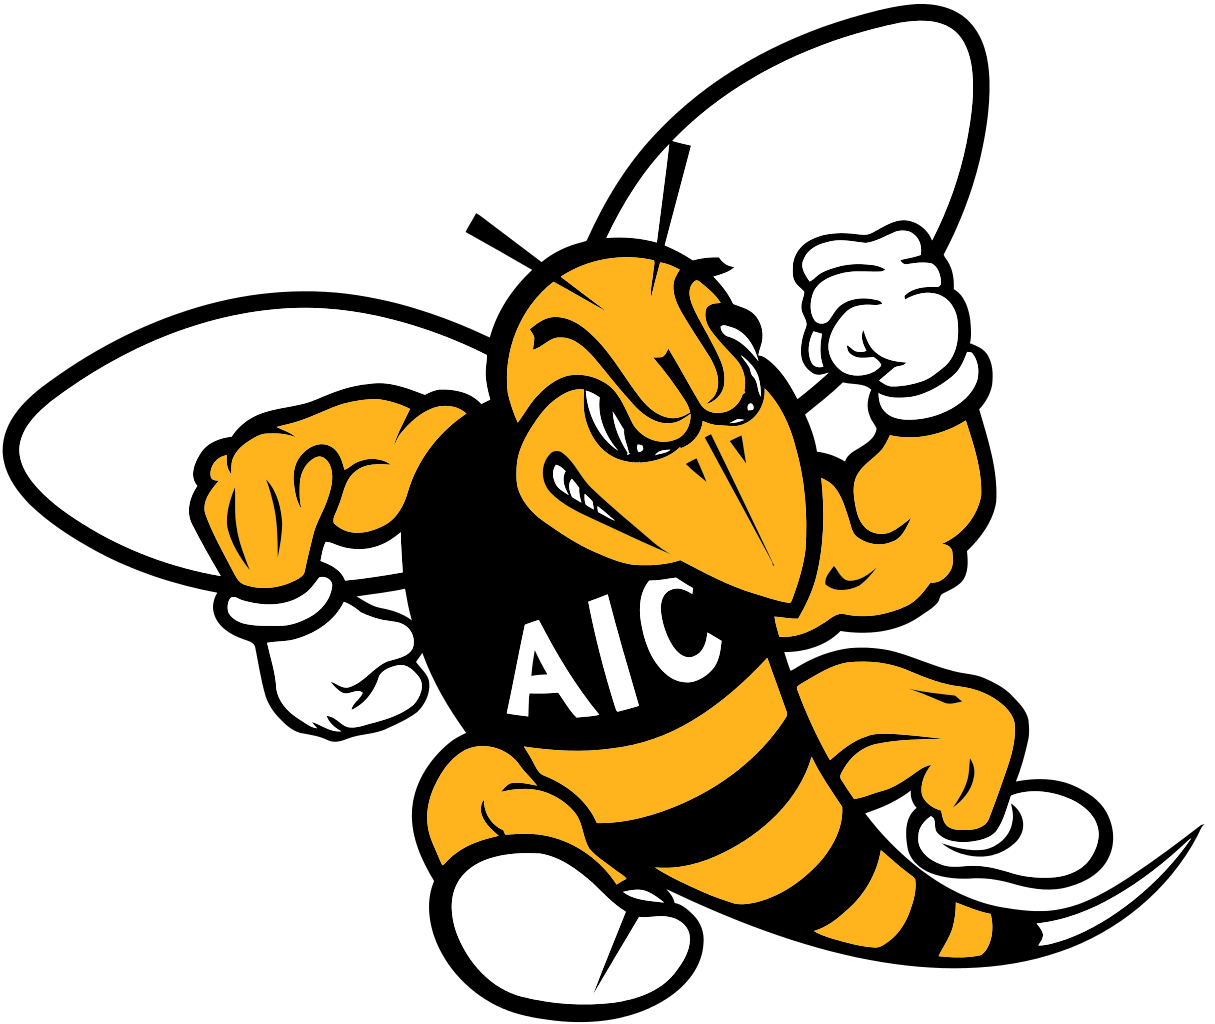 Yellow jackets american international. Wildcat clipart springfield